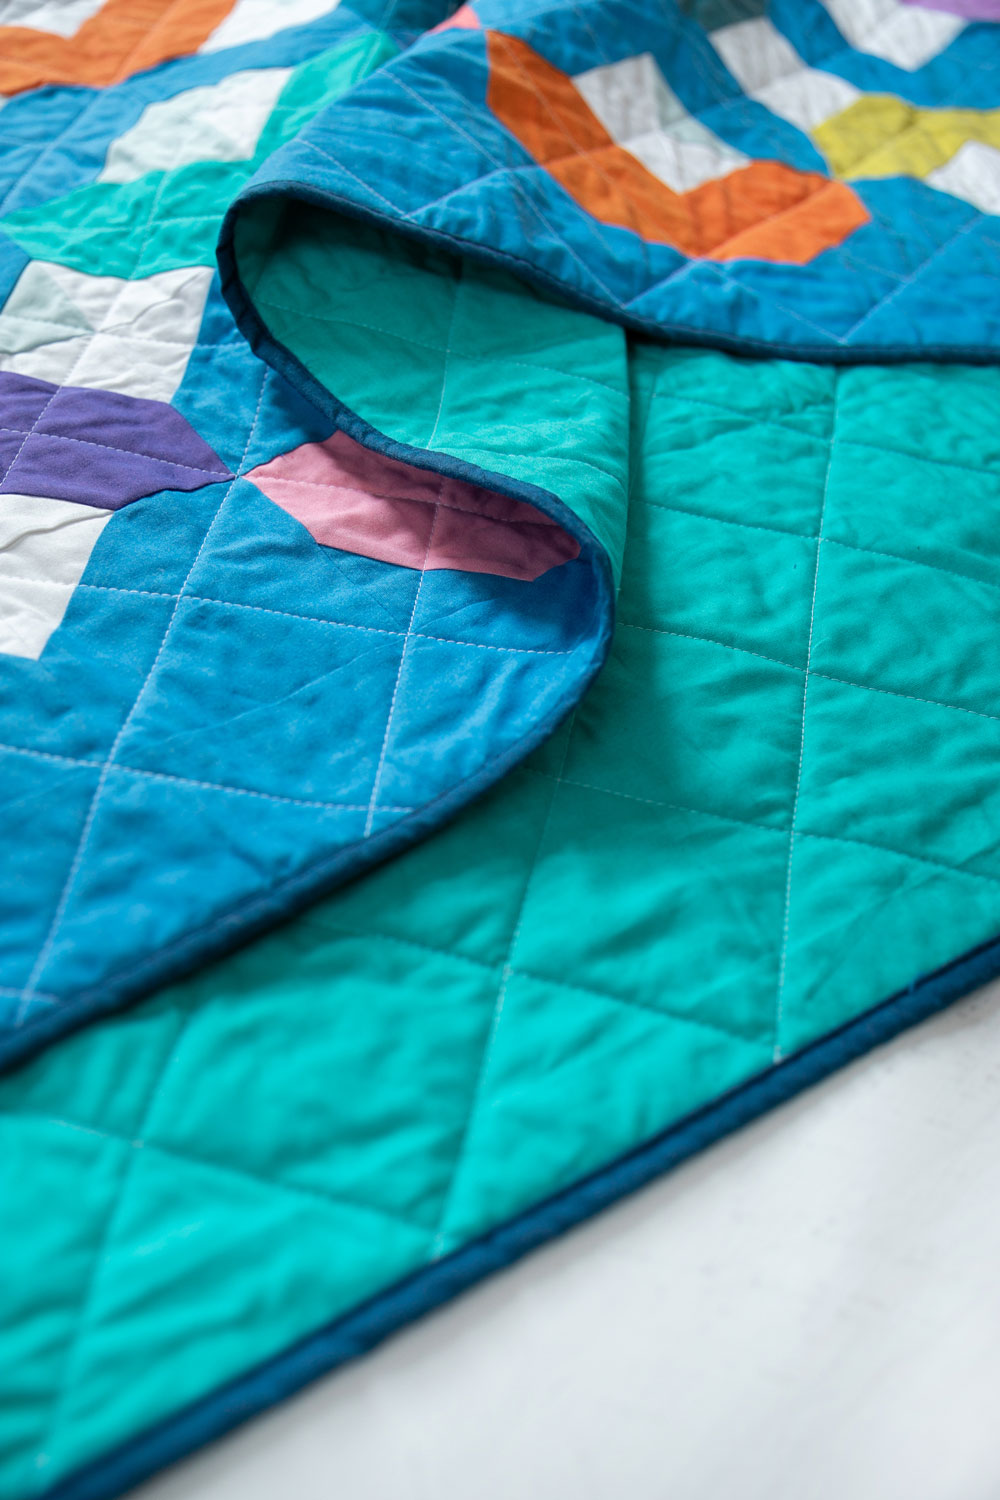 Make a Rainbow Quilt using this simple alteration to the Glitter & Glow quilt pattern. This is fat quarter friendly and great for newbie quilters and beginners. suzyquilts.com #rainbowquilt #shotcotton